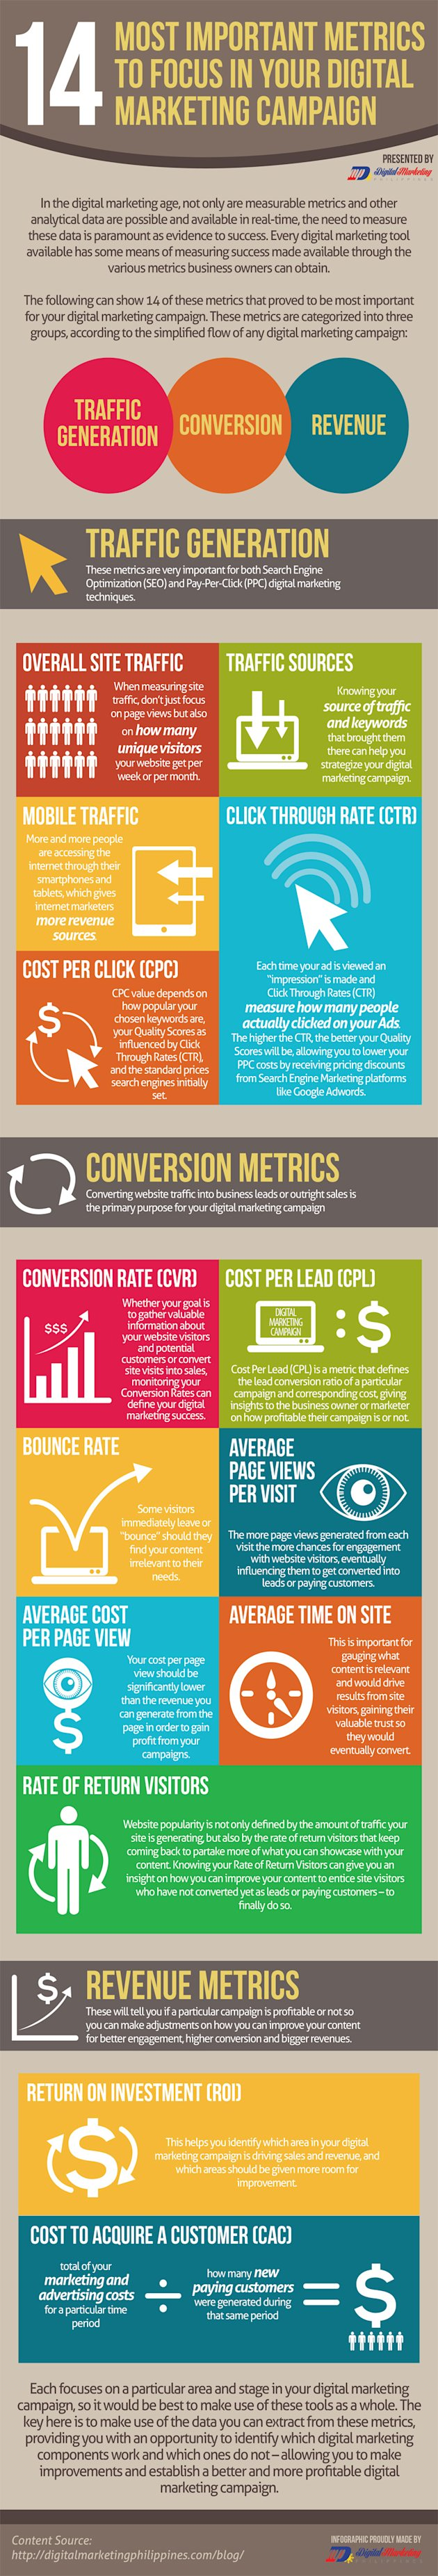 14 Most Important Metrics To Focus In Your Digital Marketing Campaign (Infographic) image 14 Most Important Metrics to Focus in Your Digital Marketing Campaign